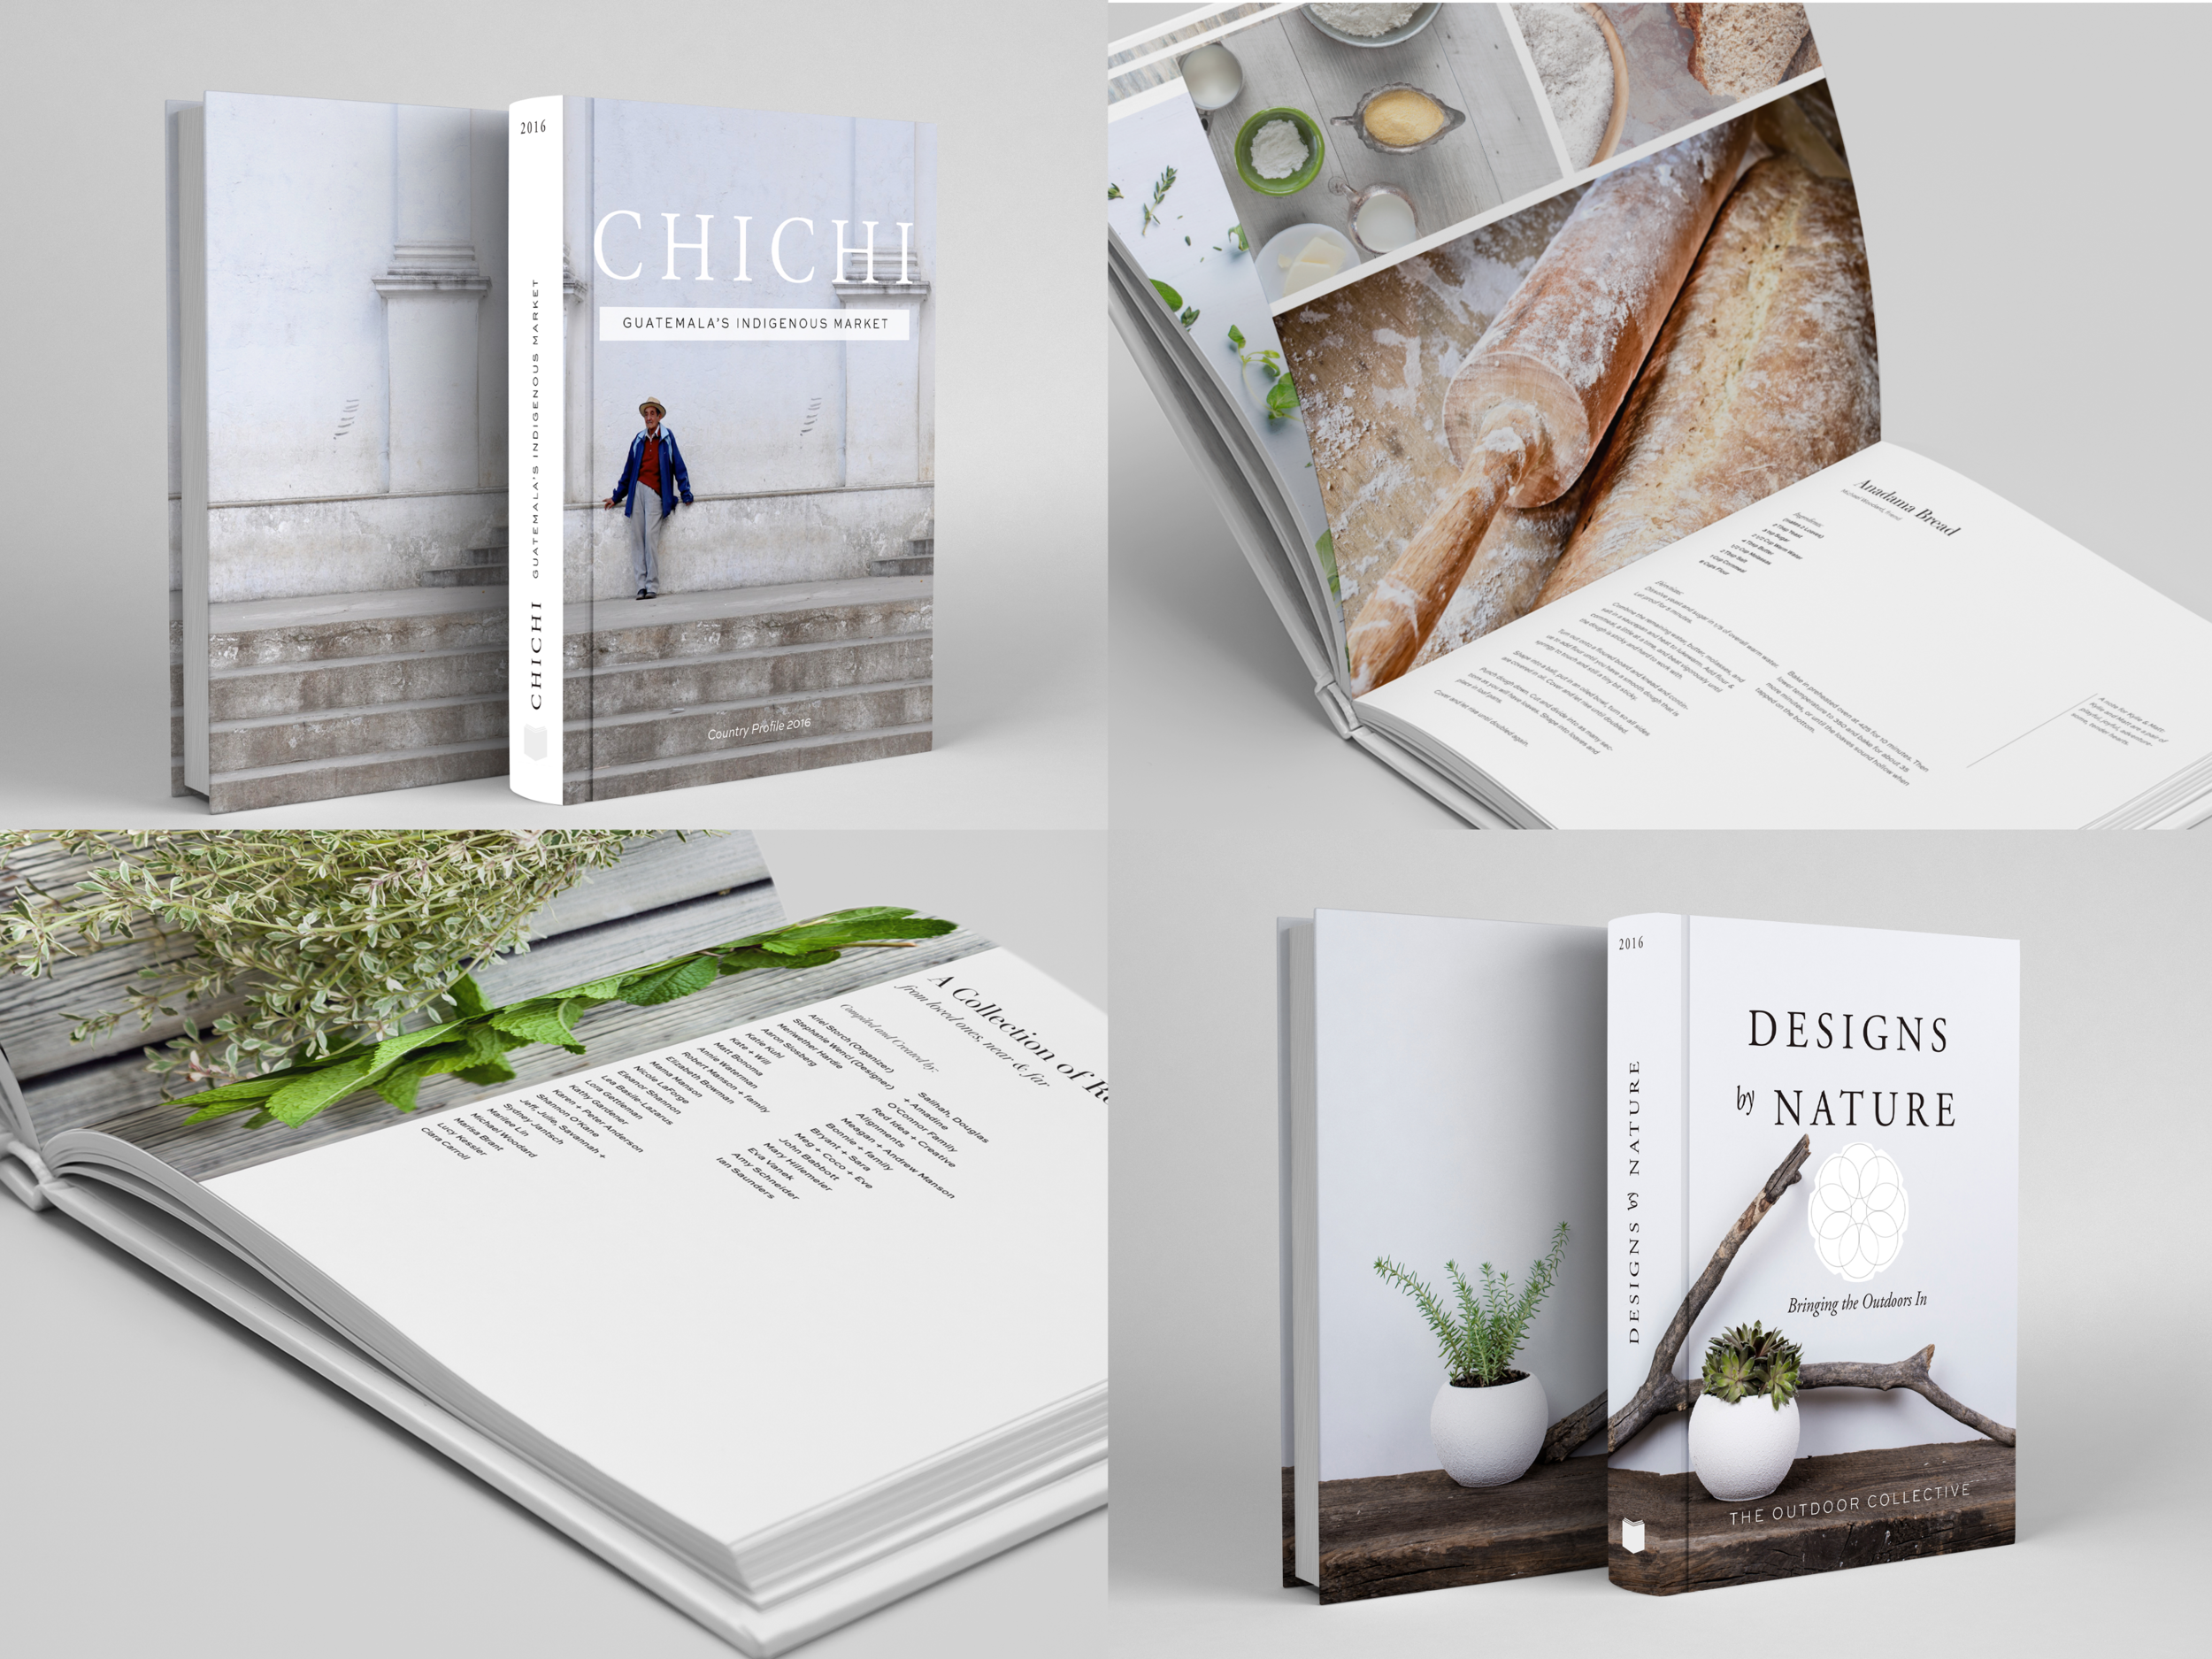 These books were designed for custom personal projects to share traditional artistry, culture, community and food.